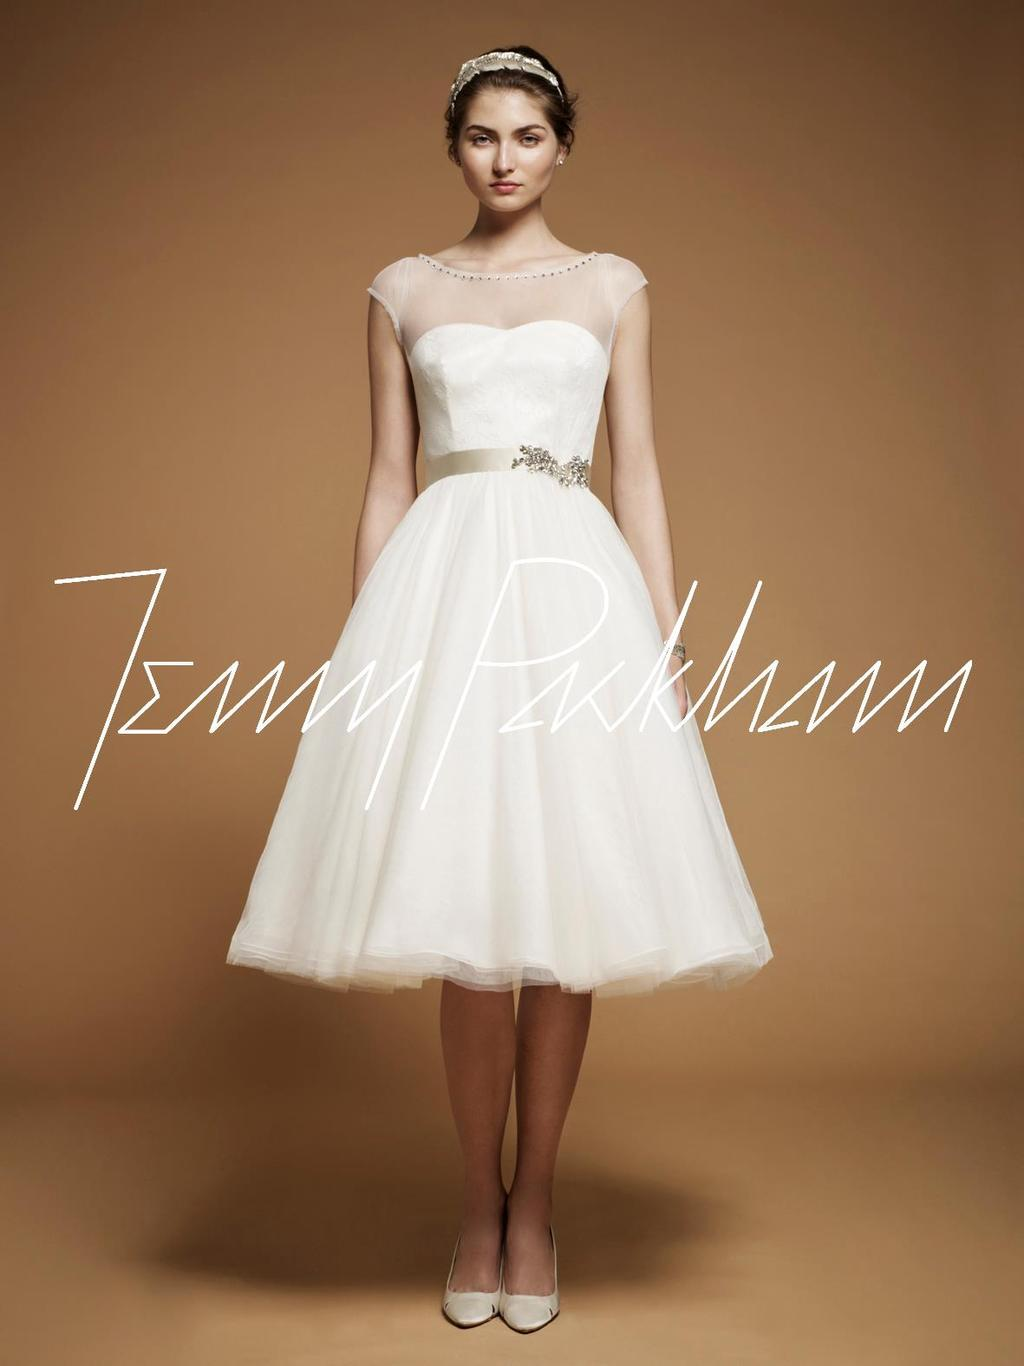 Jenny Packham wedding dress, 2012 bridal gowns 8